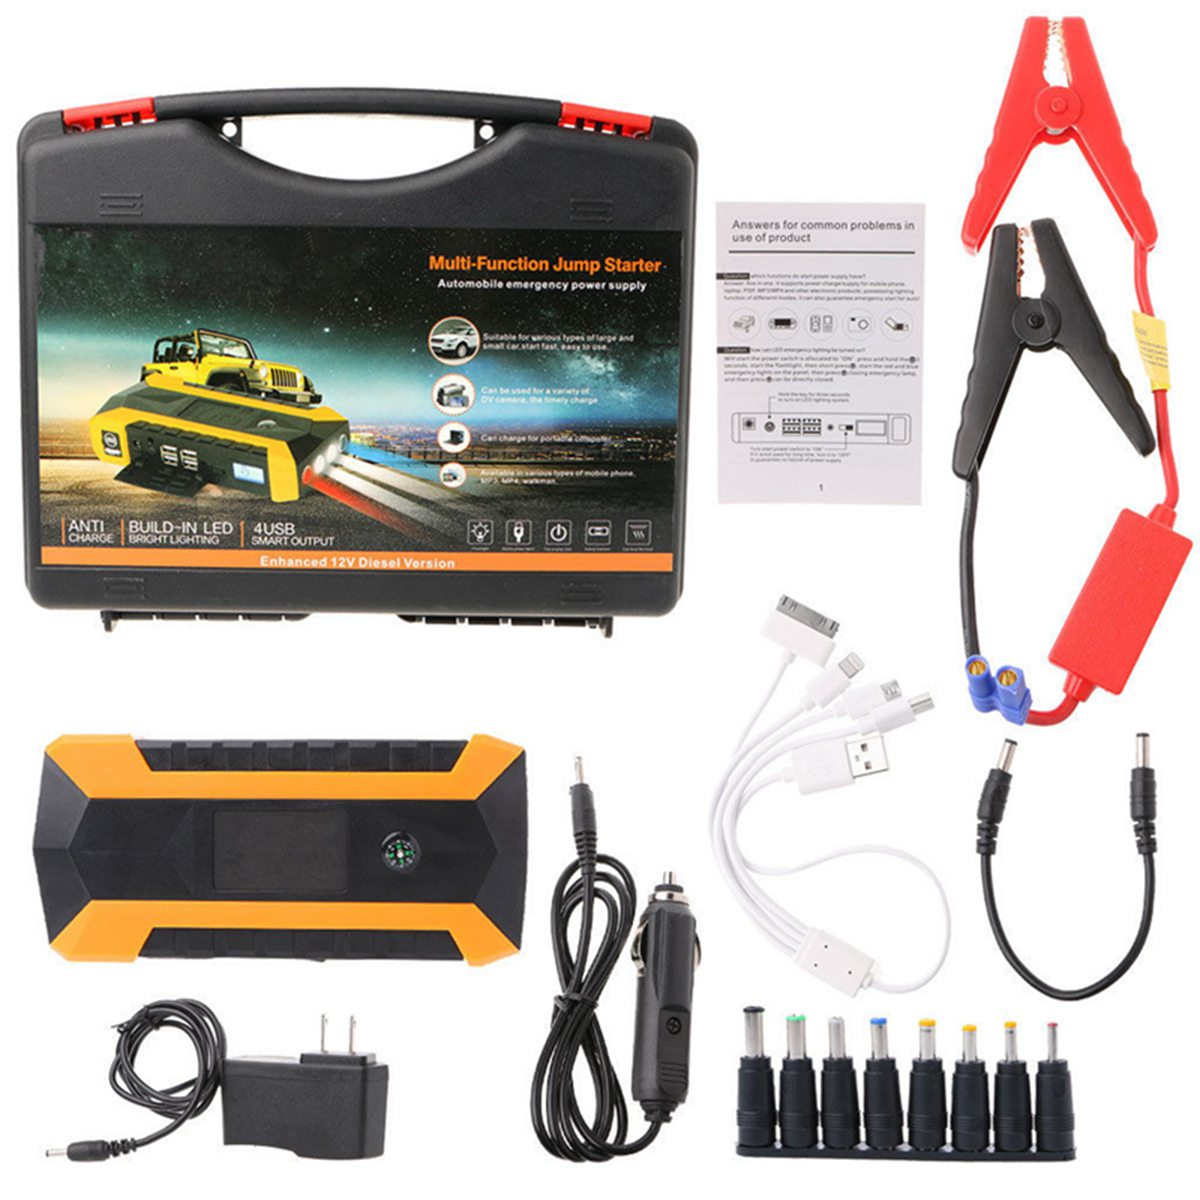 89800mAh LED Emergency Car Jump Starter 12V 4USB Charger Battery Power Bank Portable Car Battery Booster Charger Starting Device 89800mah car jump starter 12v 4usb 600a portable car battery booster charger booster power bank starting device car starter